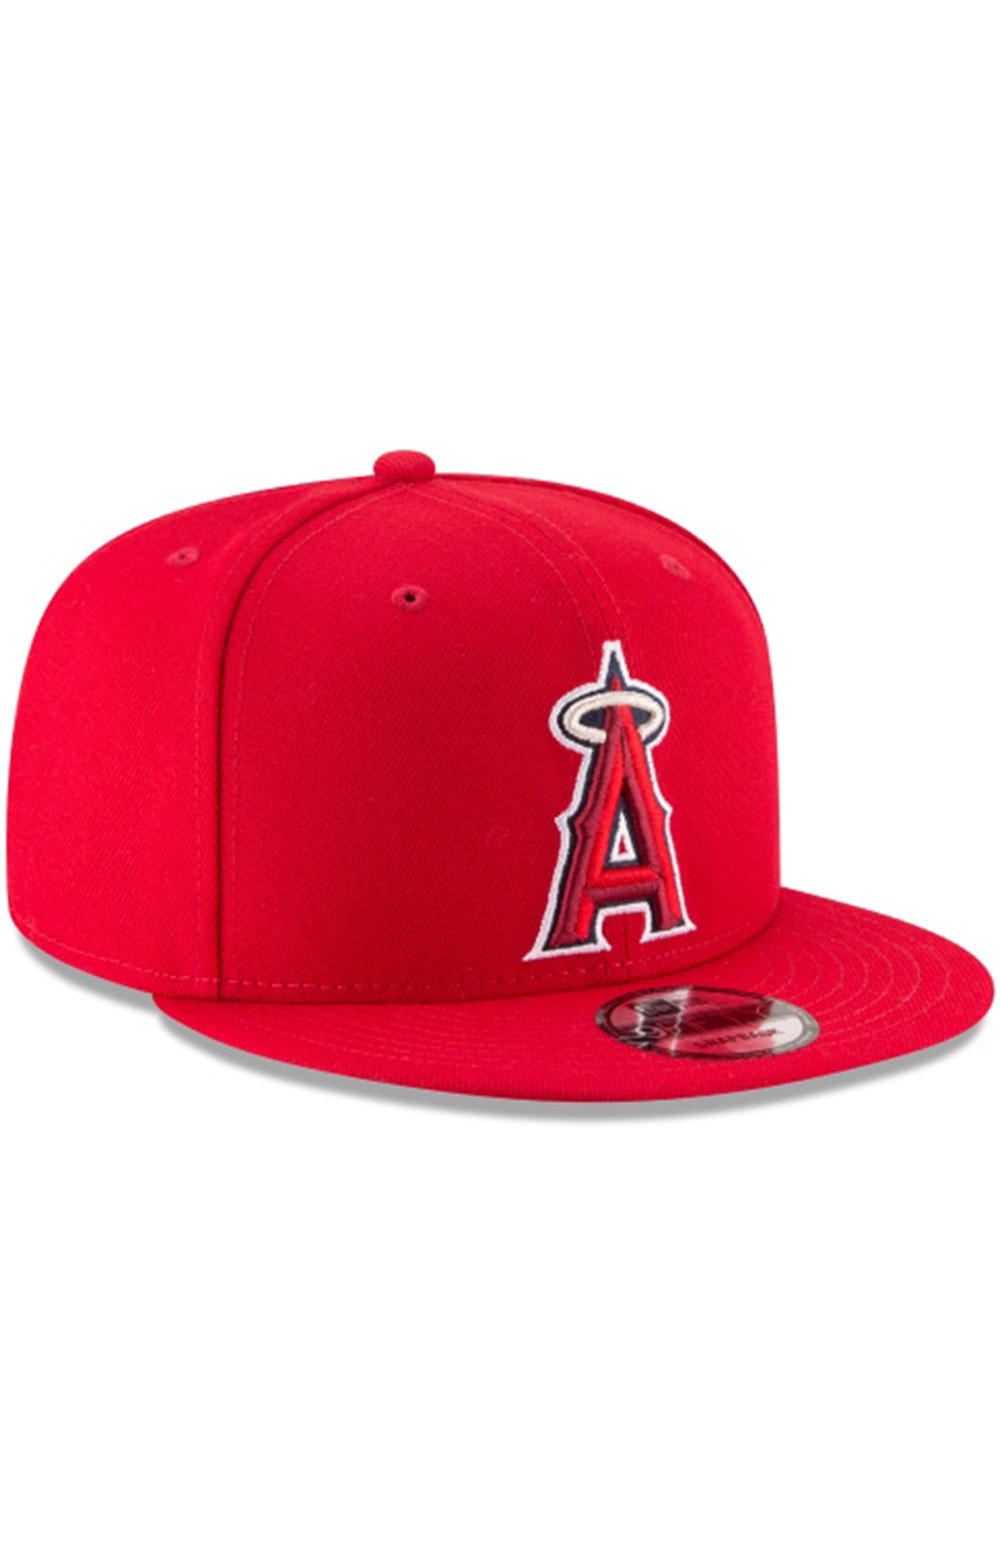 Los Angeles Angels Team Color Basic 9Fifty Snap-Back Hat  6